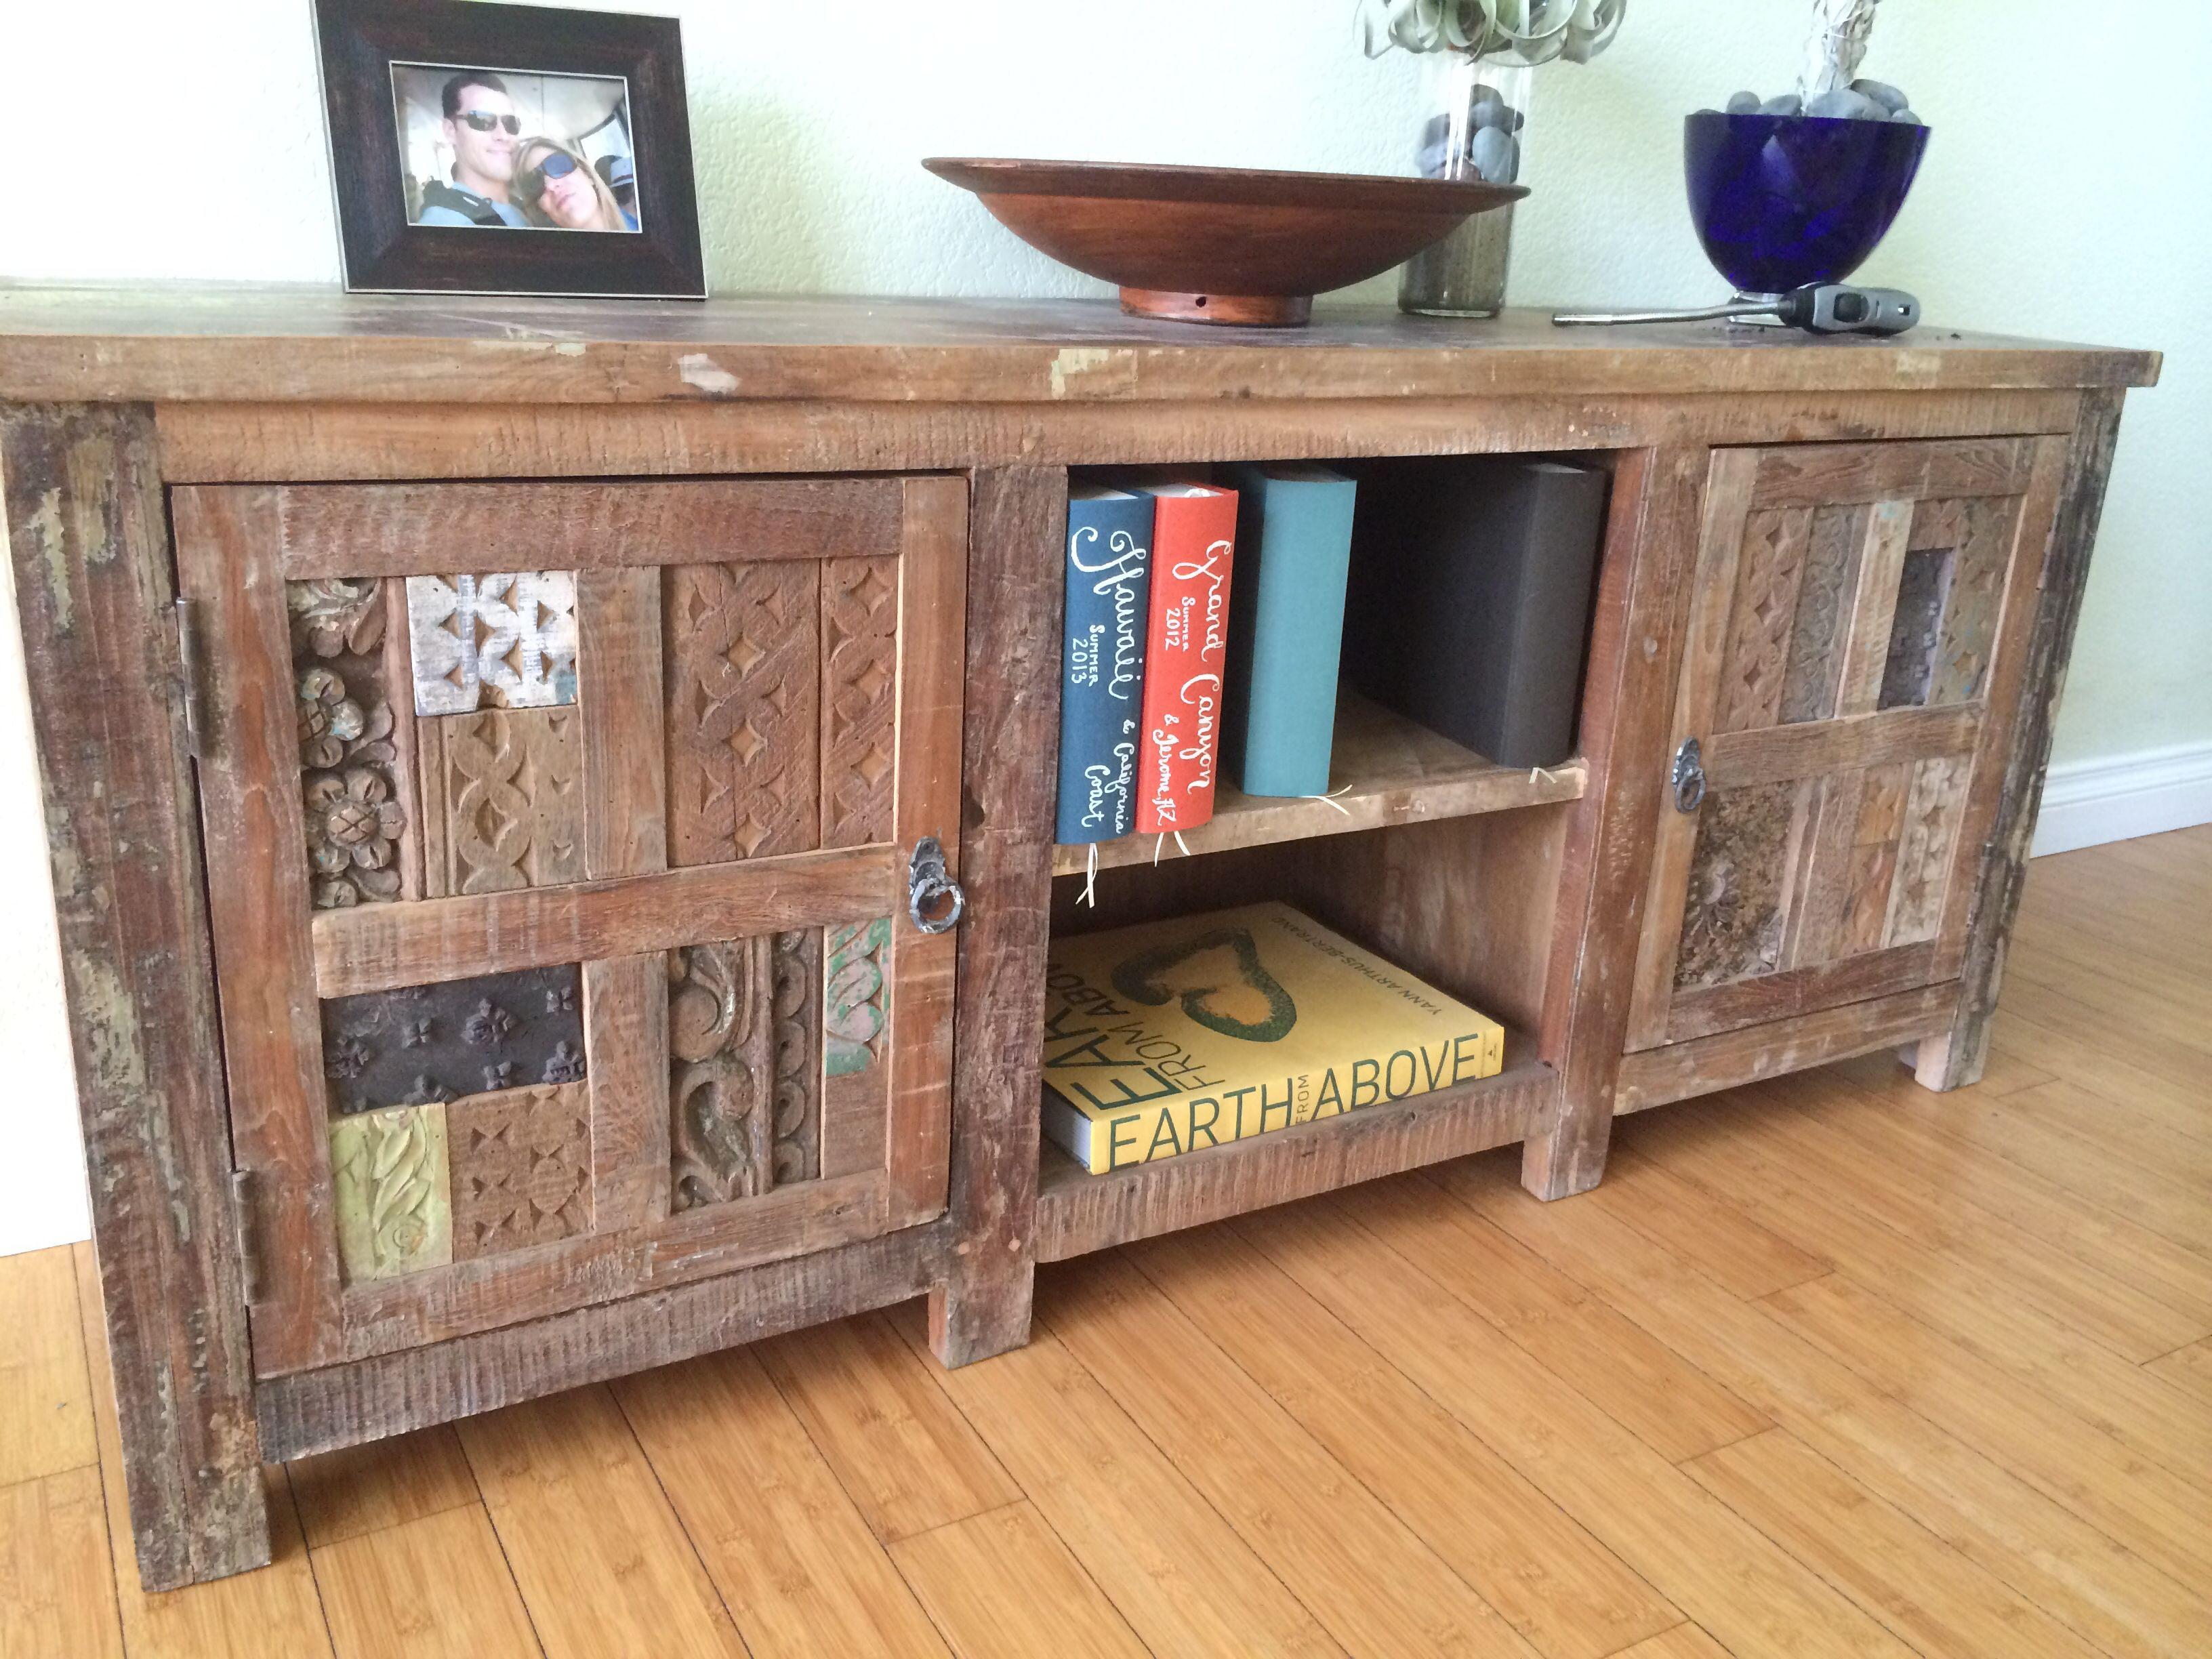 Go green with our new reclaimed teak western decor furniture available - Indian Boat Wood Reclaimed Tv Stand Teak